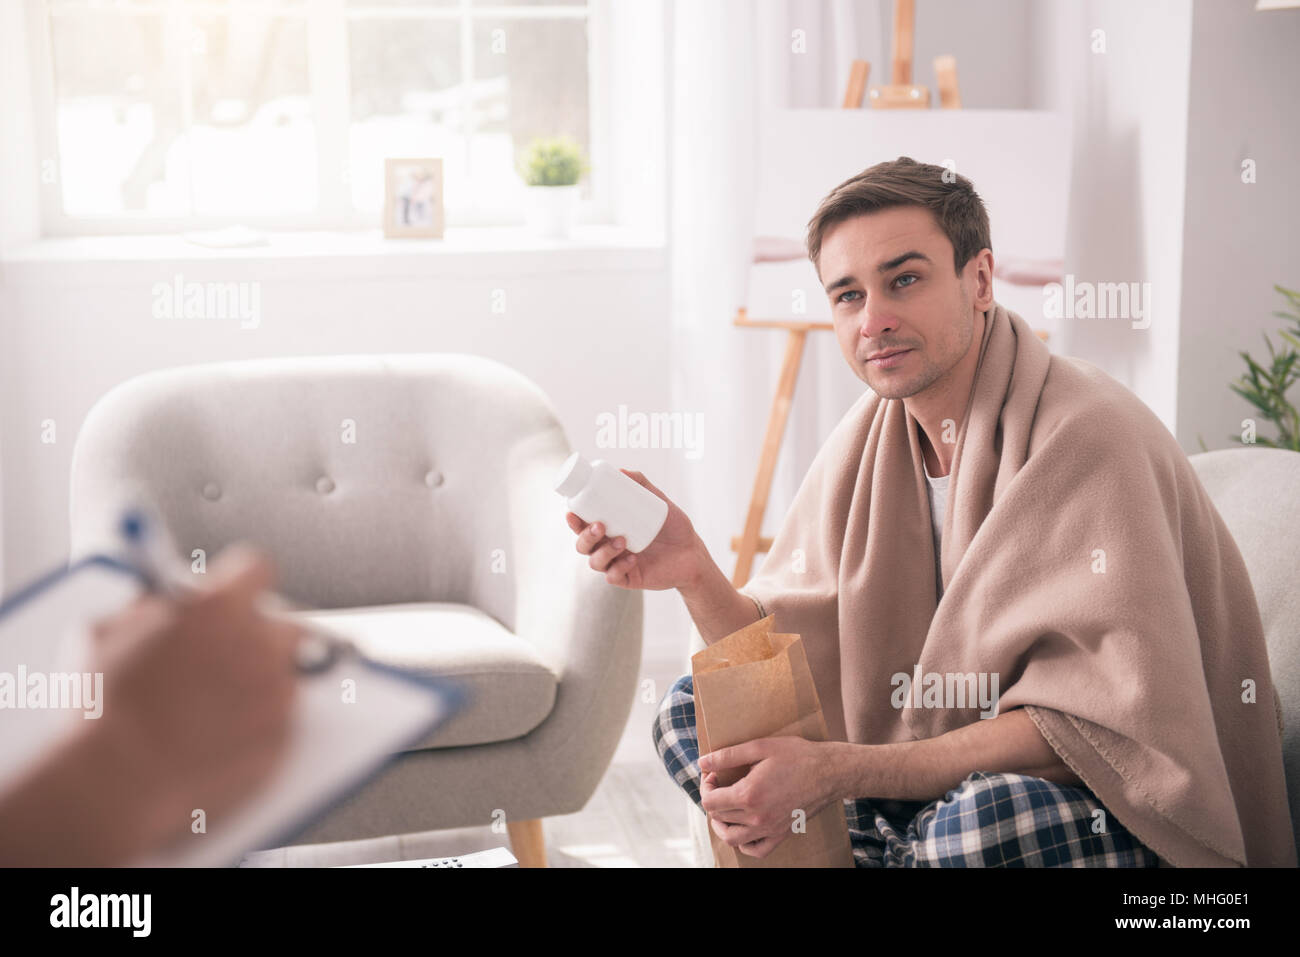 Nice good looking man opening the package - Stock Image